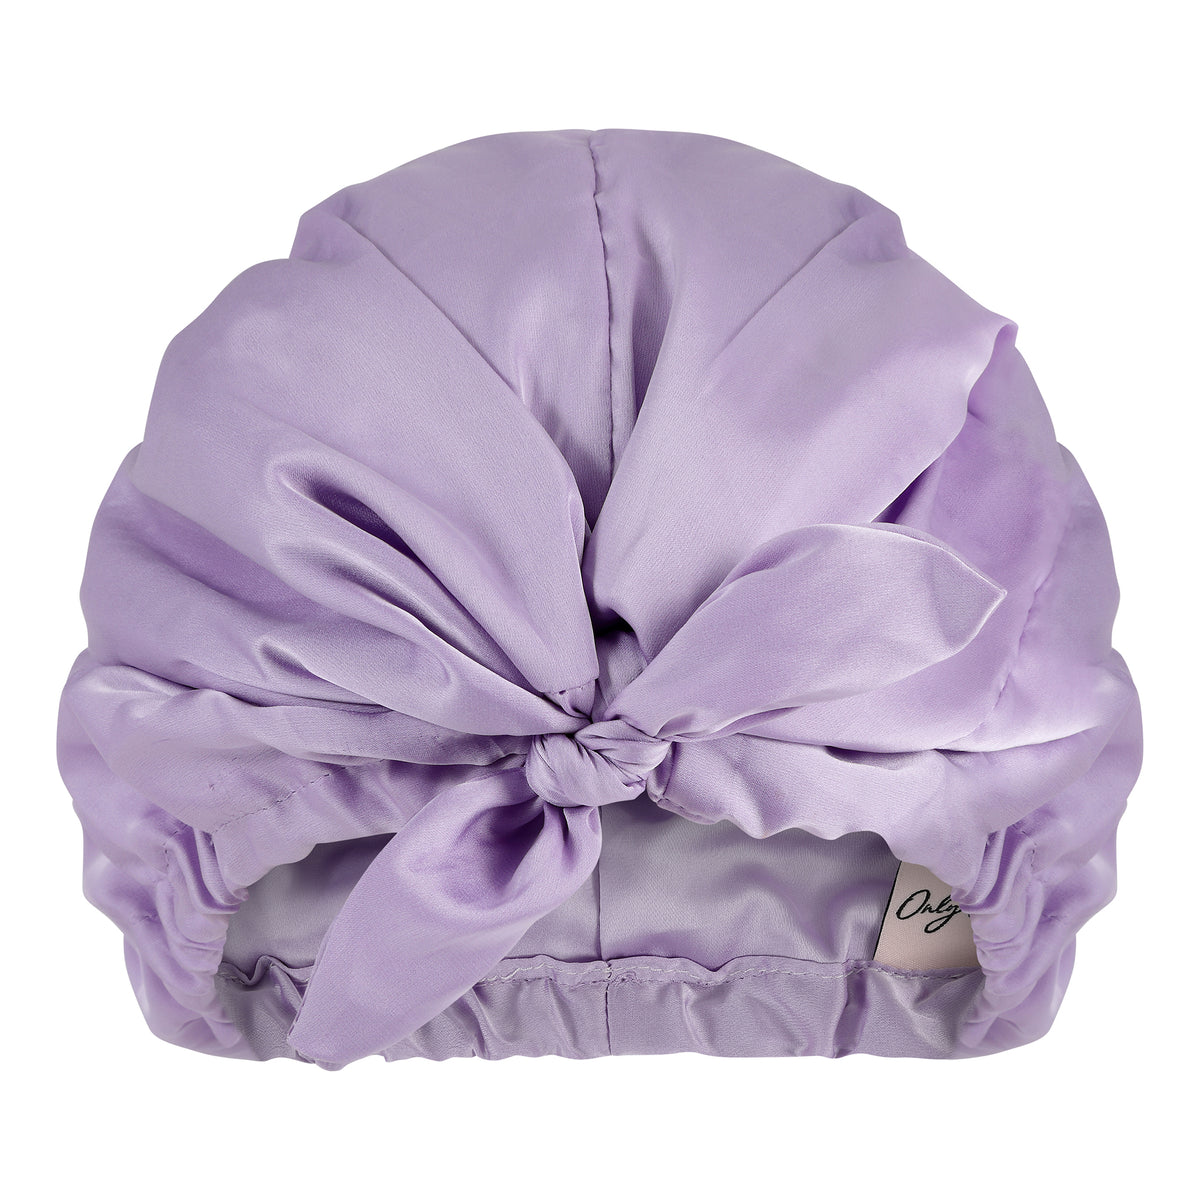 Only Curls Satin Sleep Turban - Lavender - Only Curls